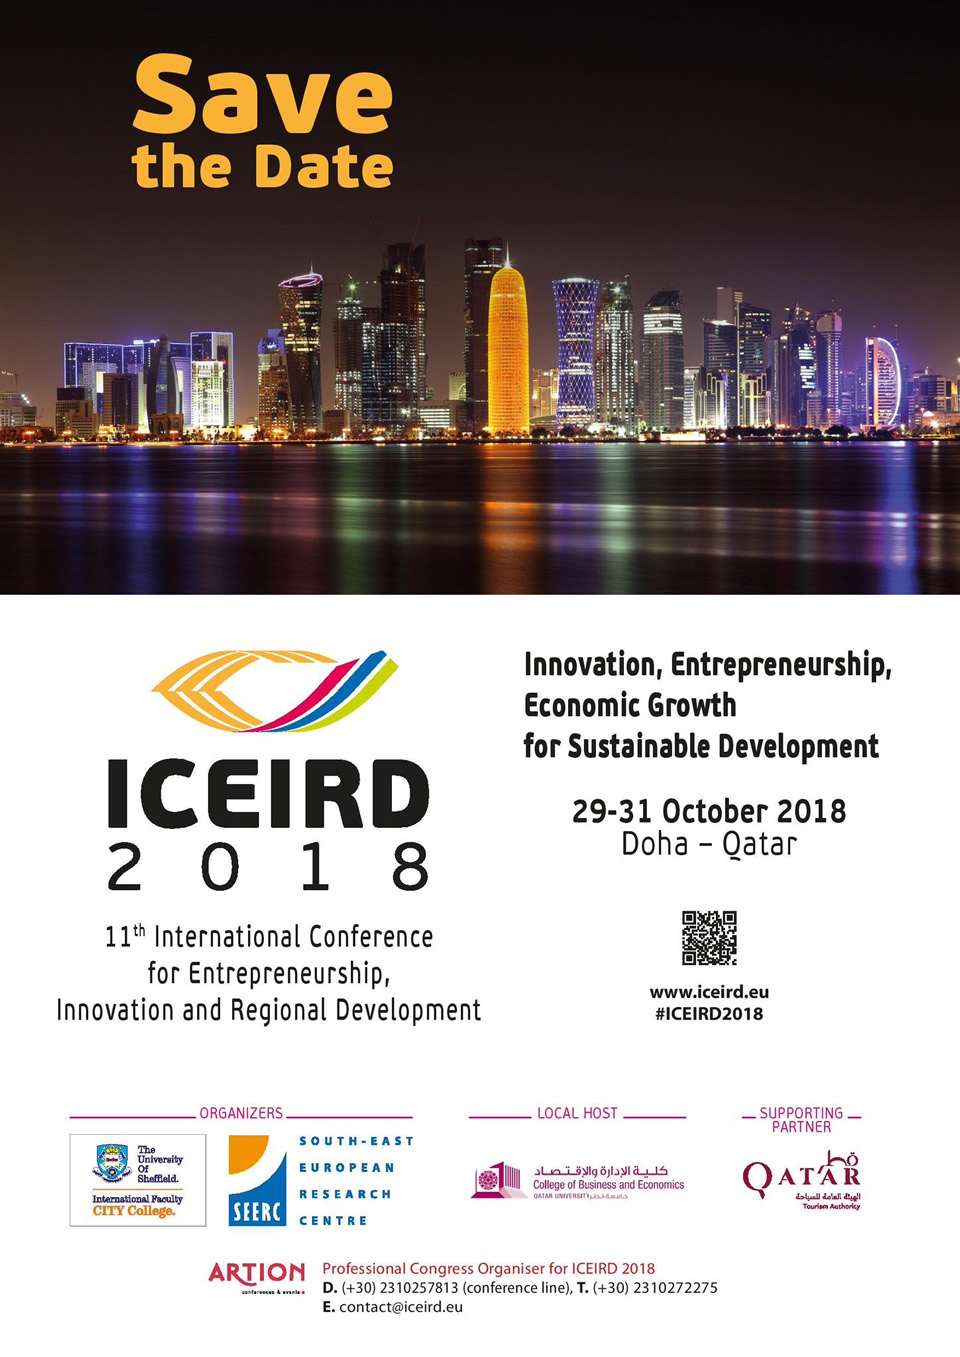 11th International Conference for Entrepreneurship, Innovation and Regional Development (ICEIRD 2018)